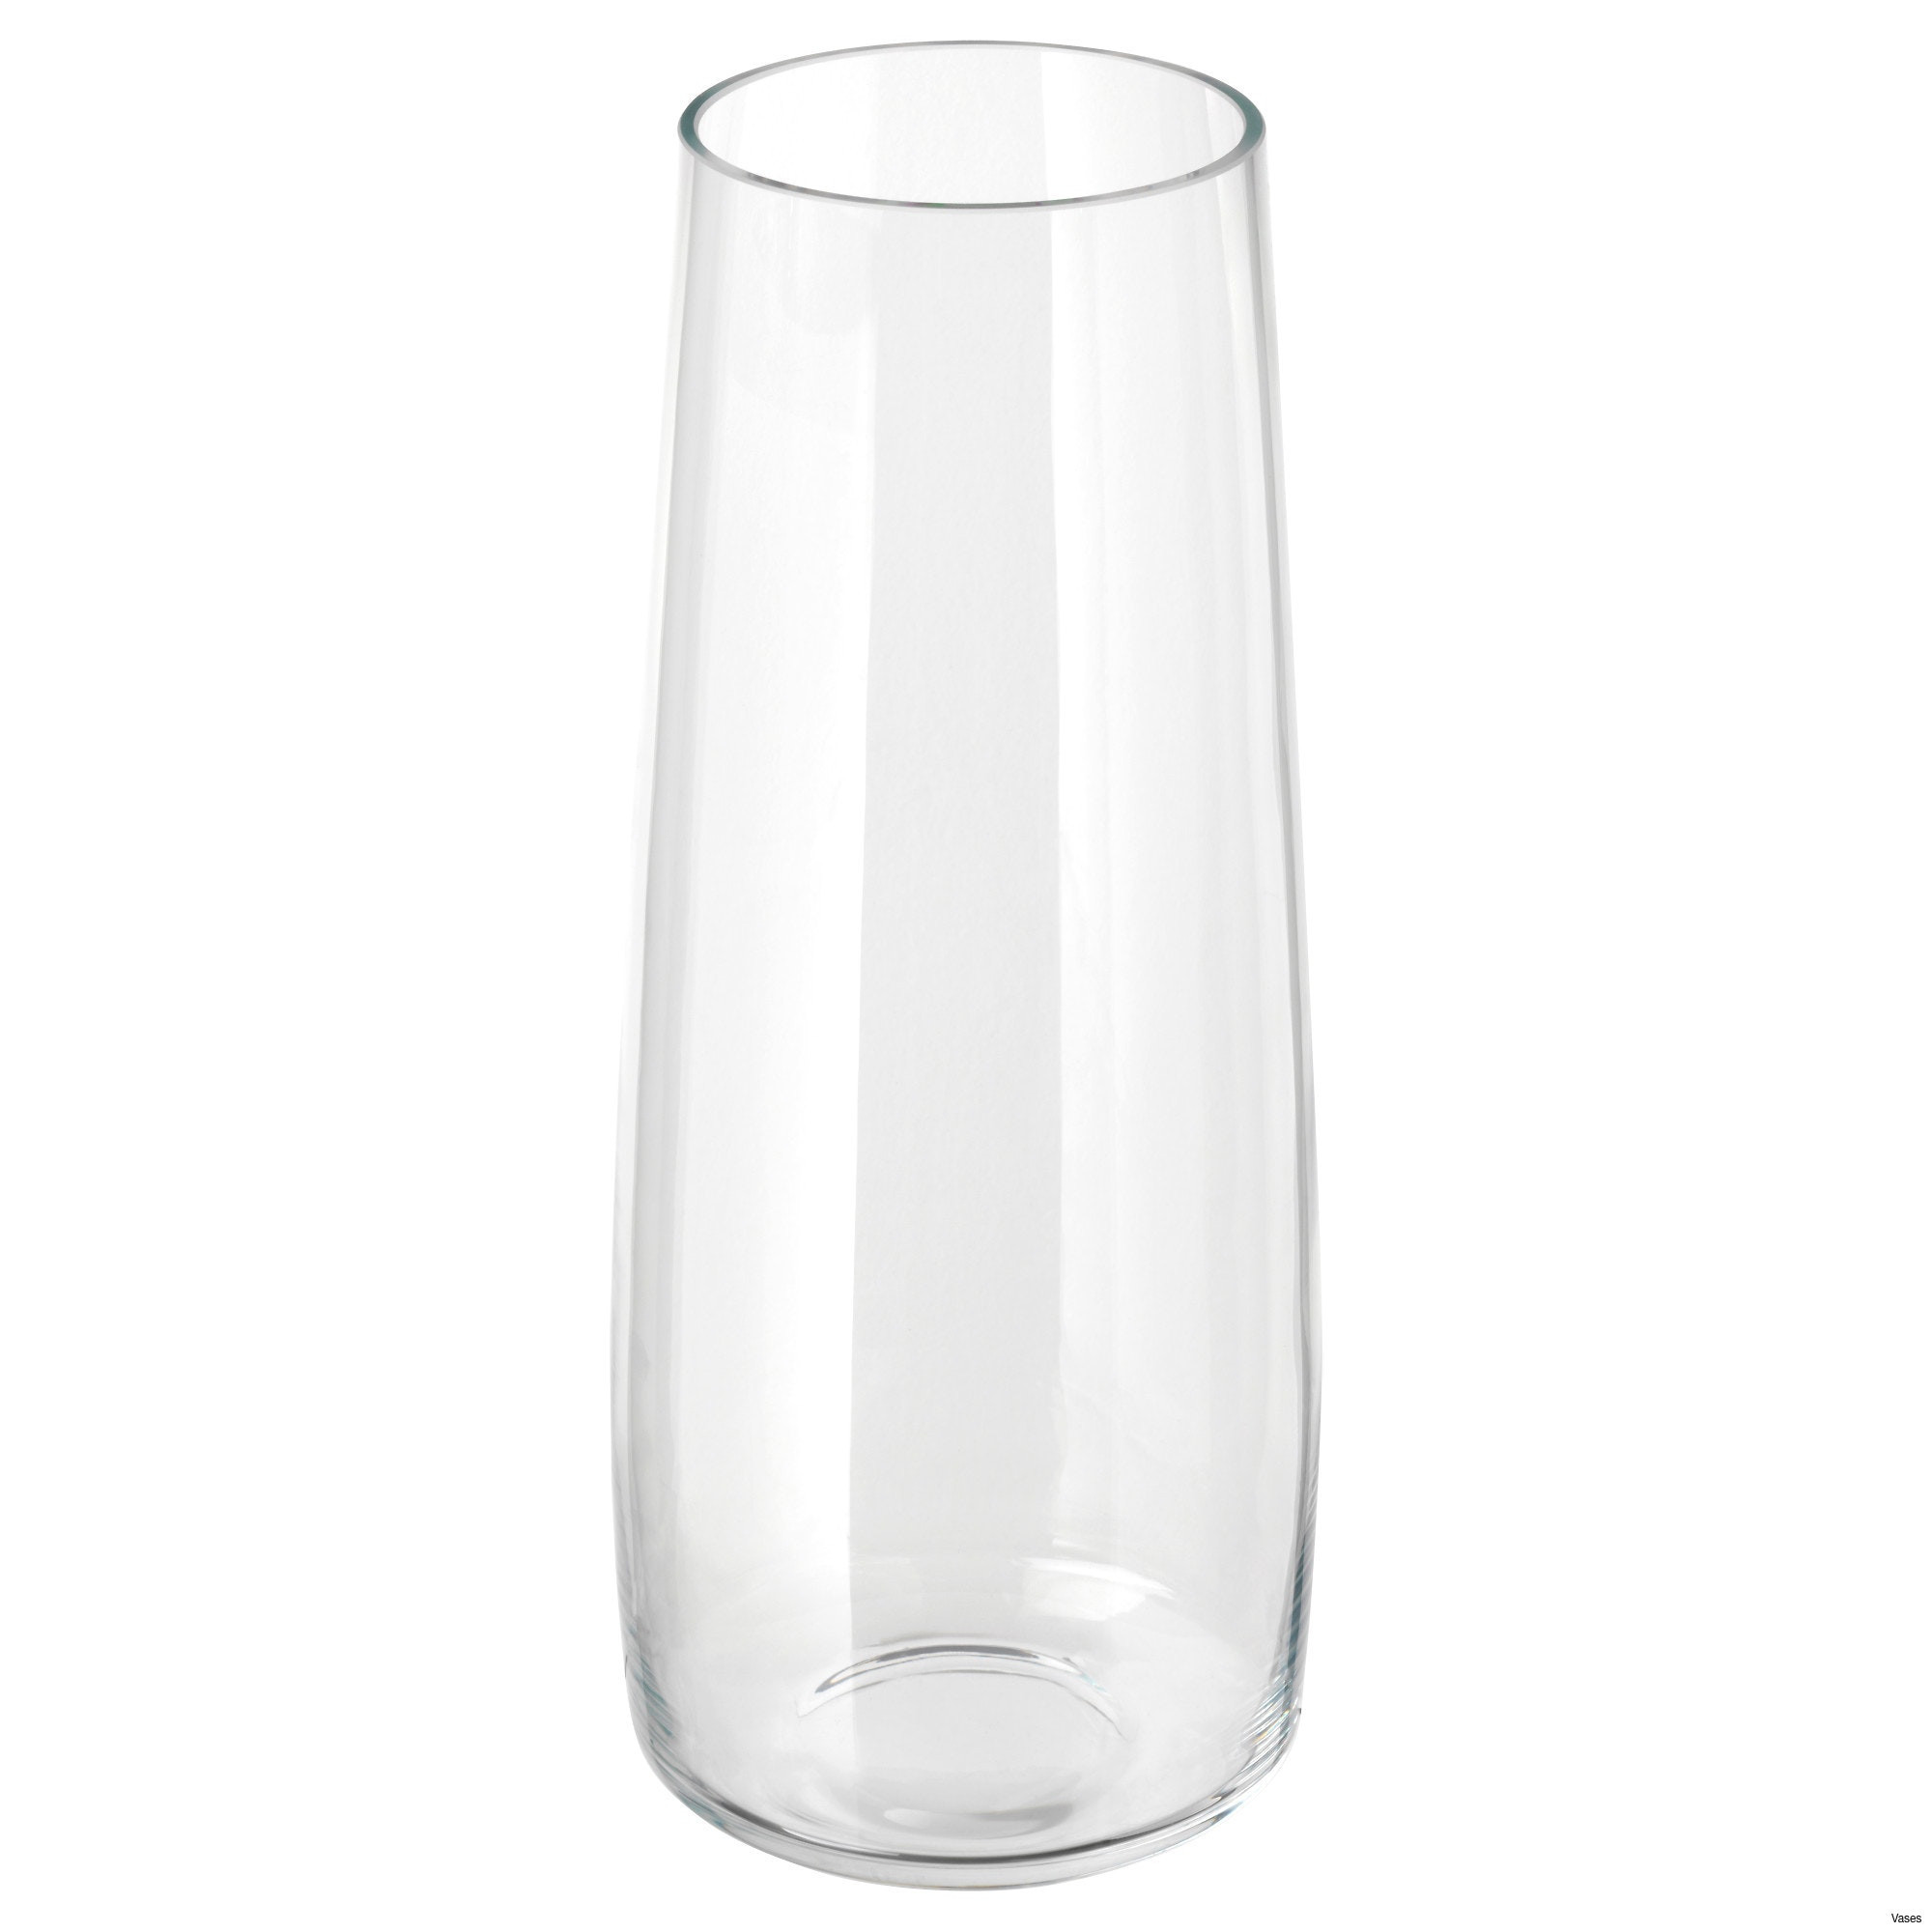 small colored glass vases of round glass vases pictures vases bubble ball discount 15 vase round throughout round glass vases photograph clear glass planters fresh clear glass vases of round glass vases pictures